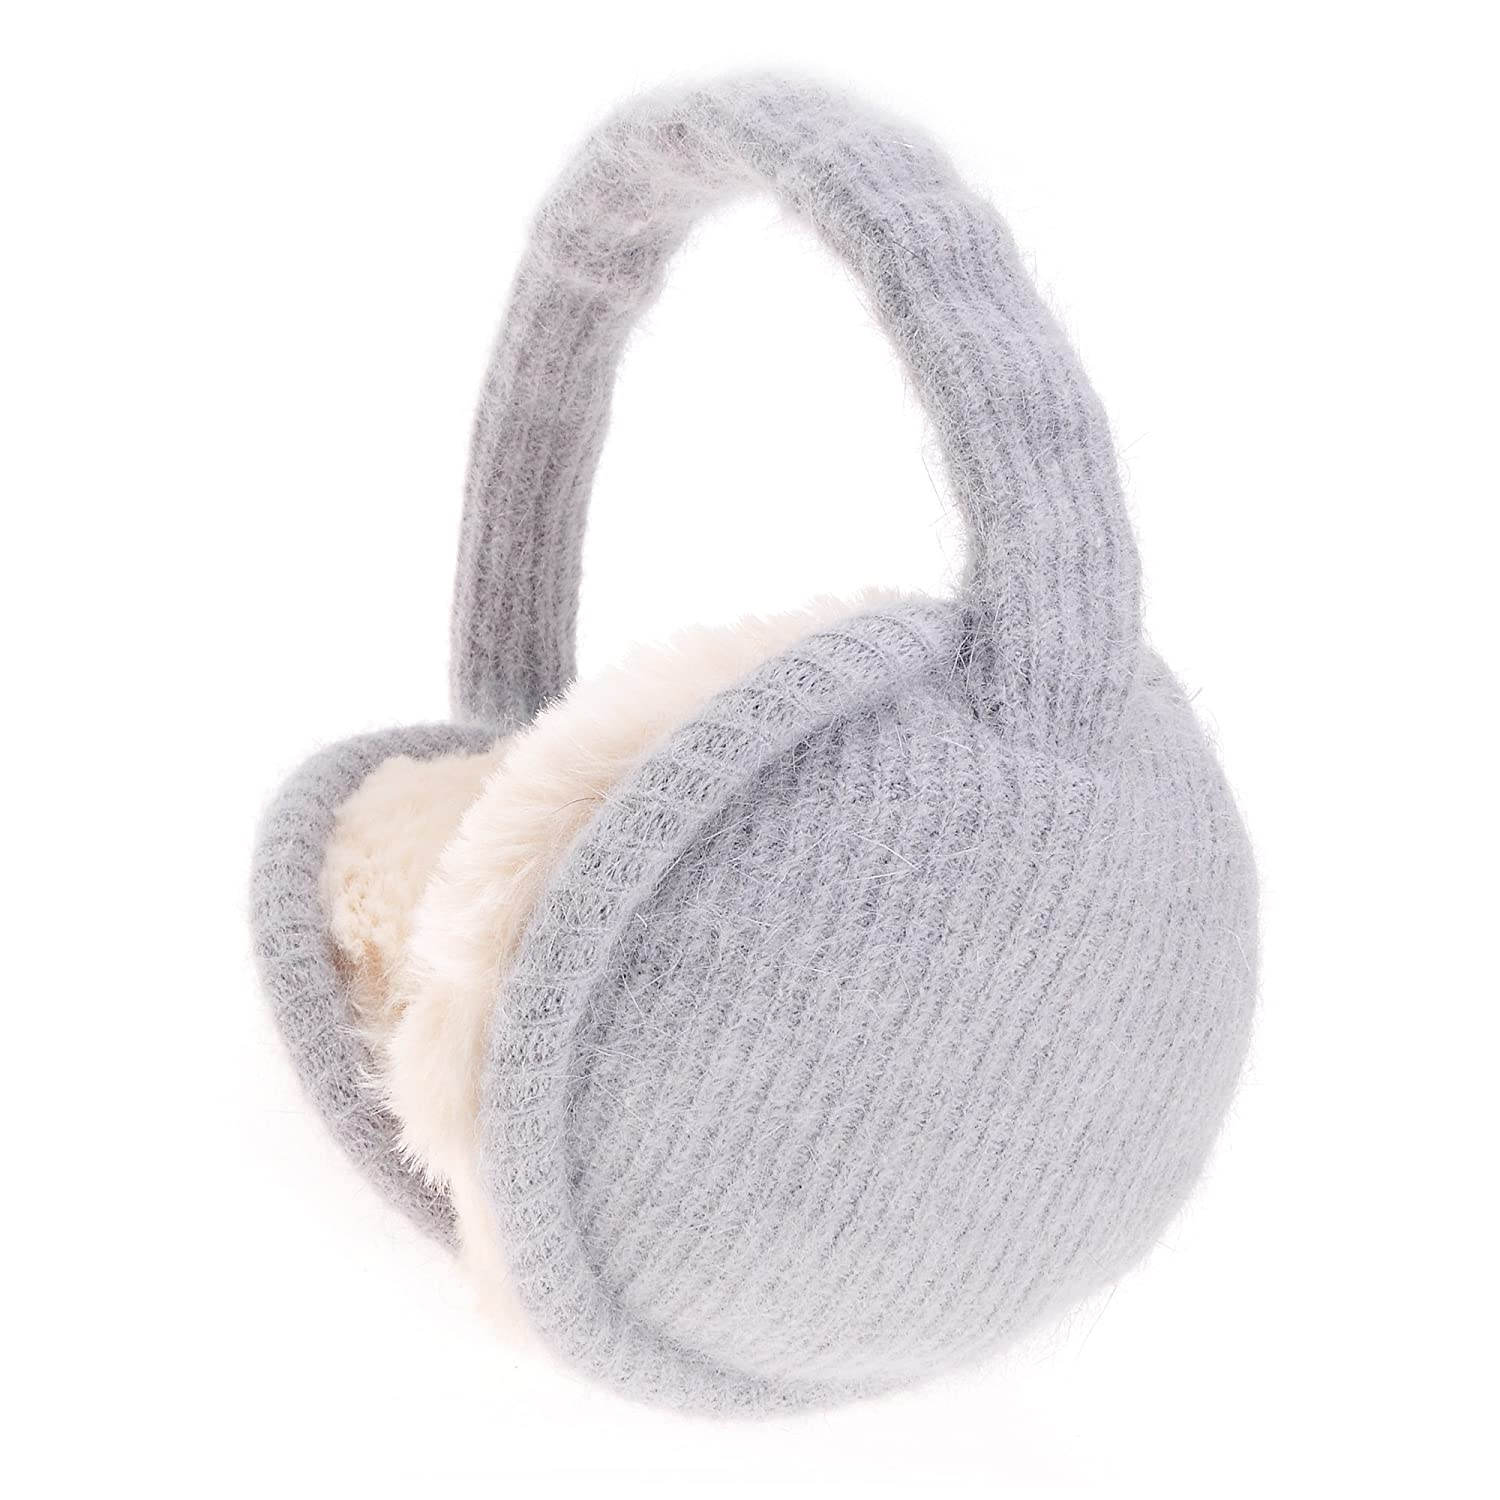 ZLYC Womens Girls Winter Warm Adjustable Knitted Ear Warmers Foldable Earmuffs, Beige ZYJ-ET-017-BG